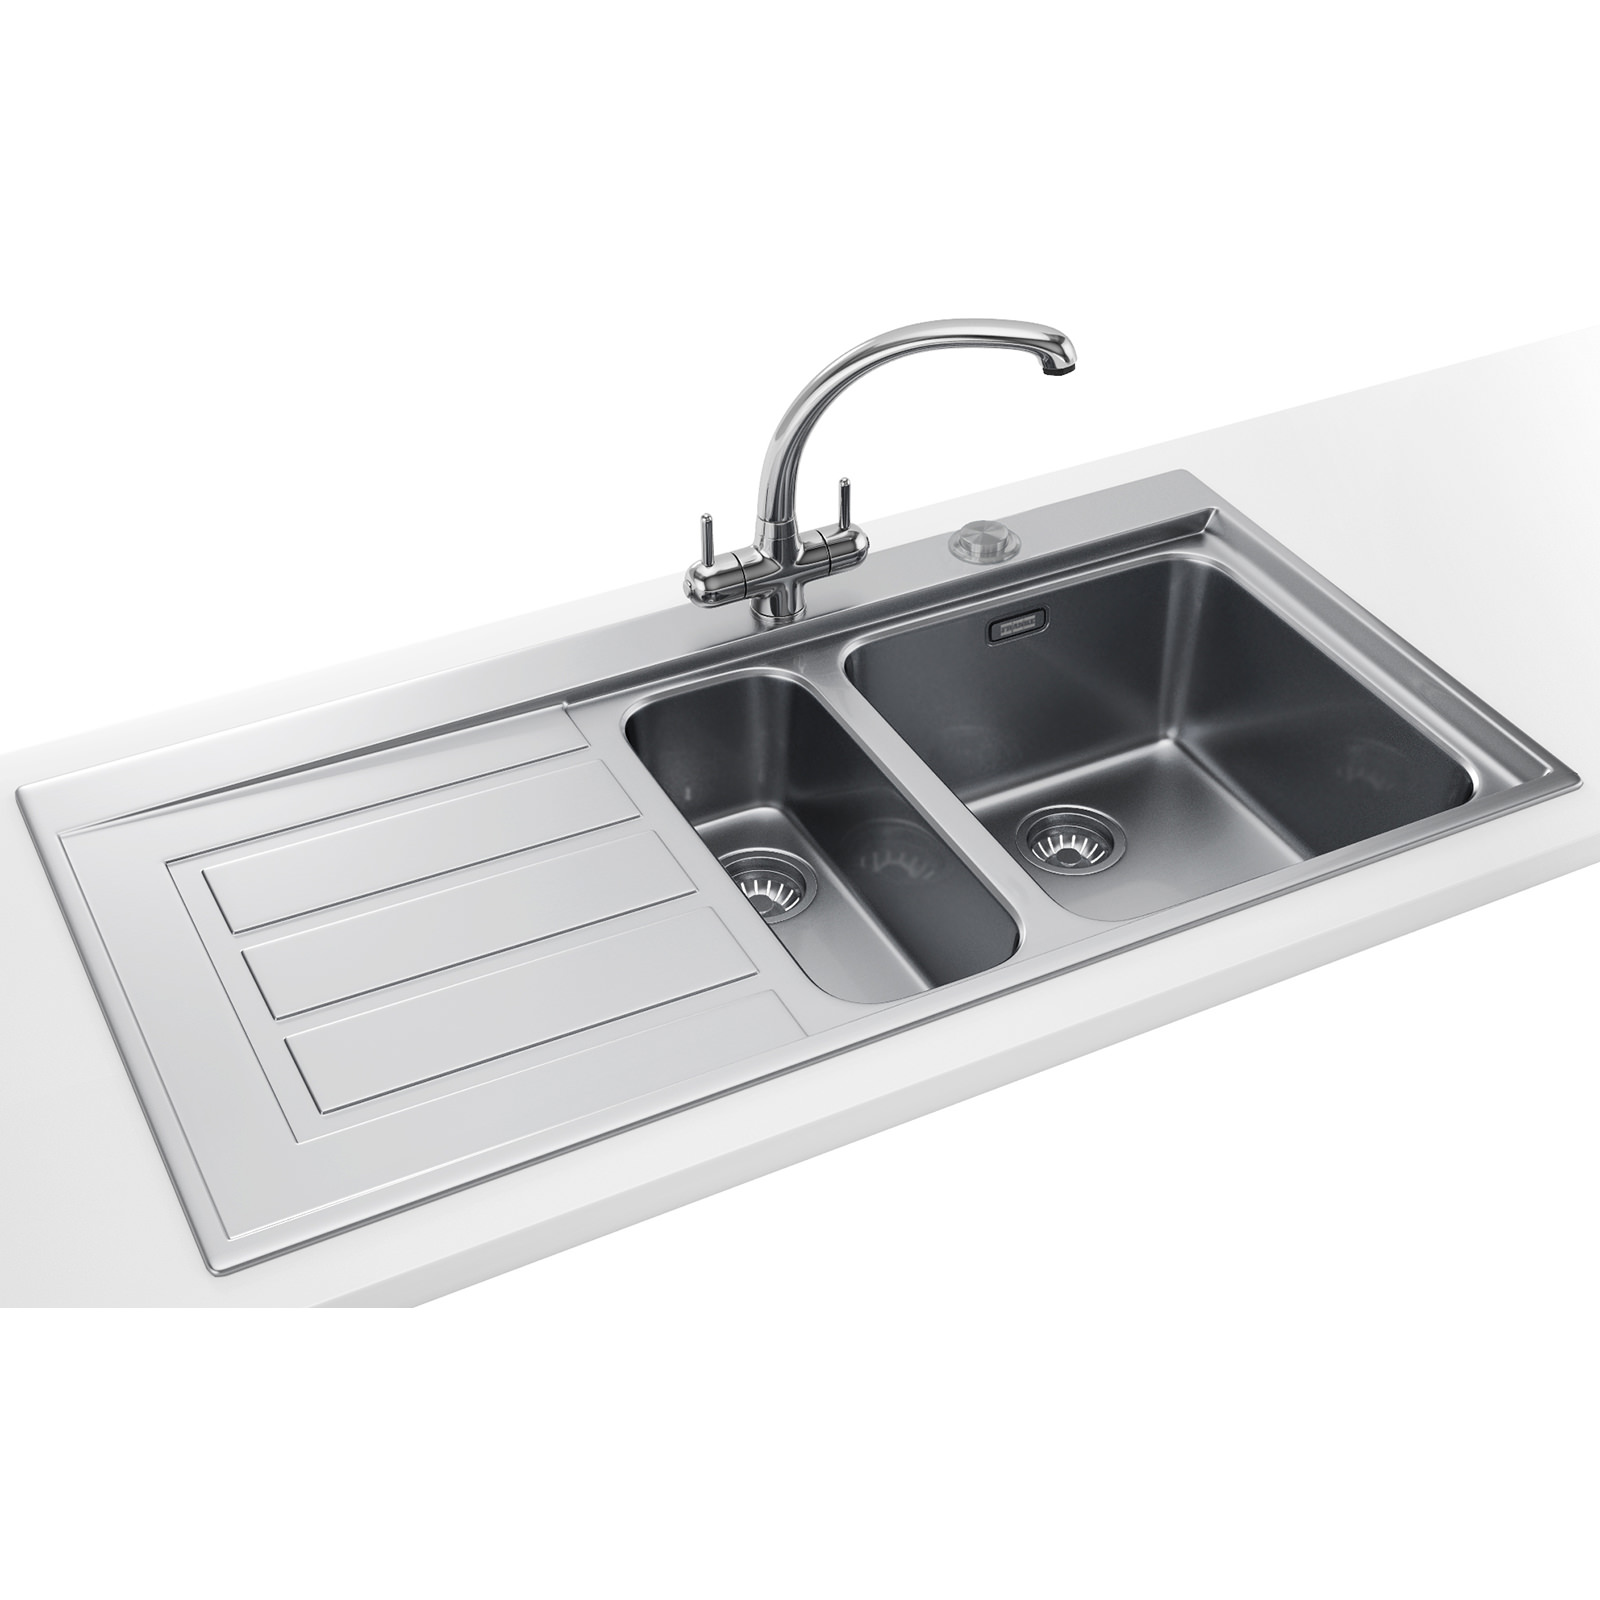 franke kitchen sinks and taps franke epos propack eox 651 stainless steel kitchen sink 6682